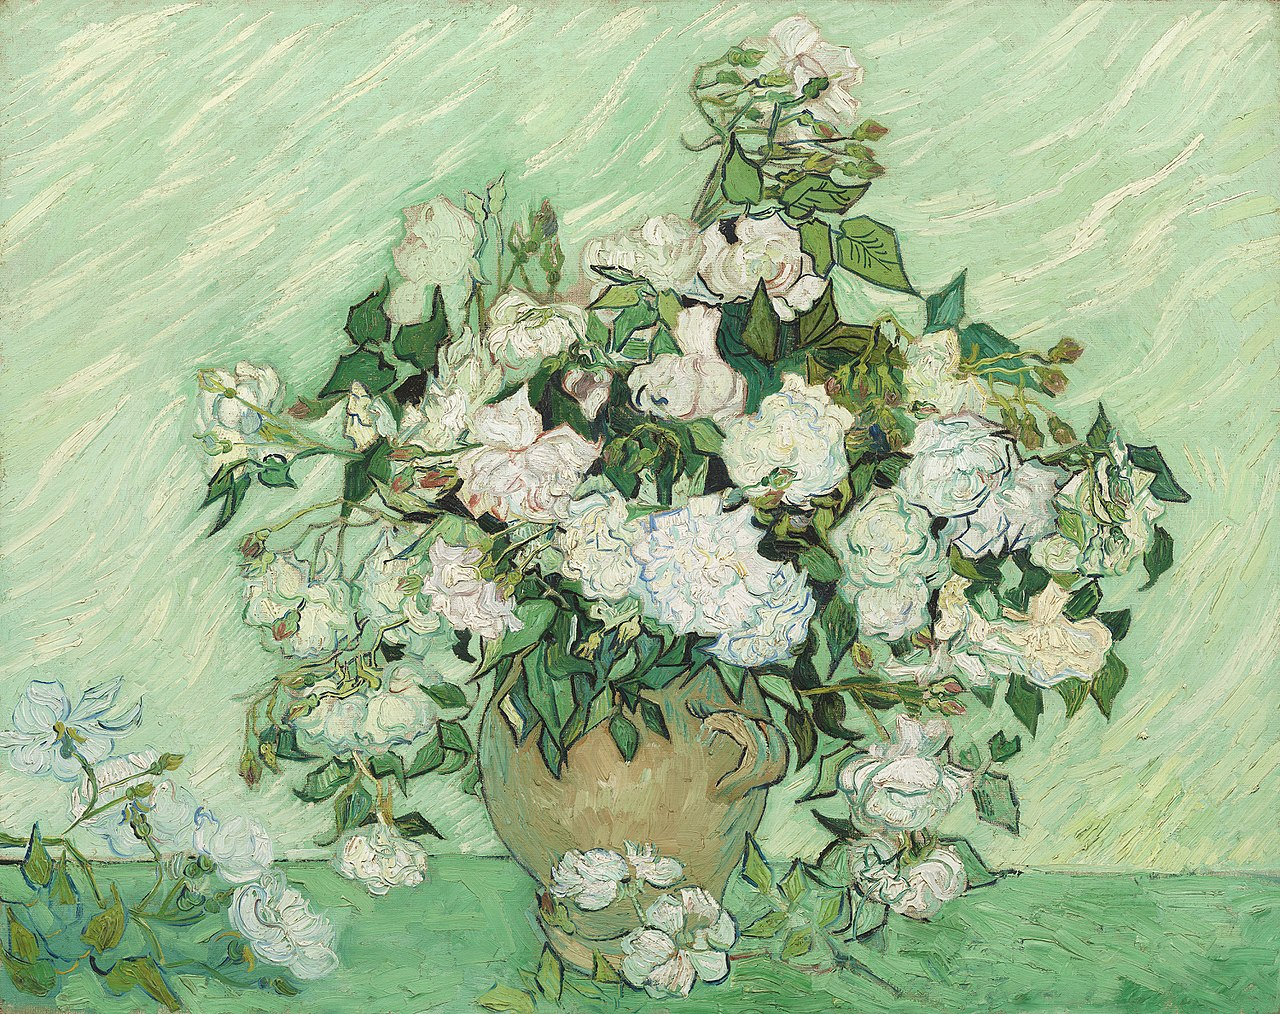 Still Life: Vase with Pink Roses by Vincent van Gogh